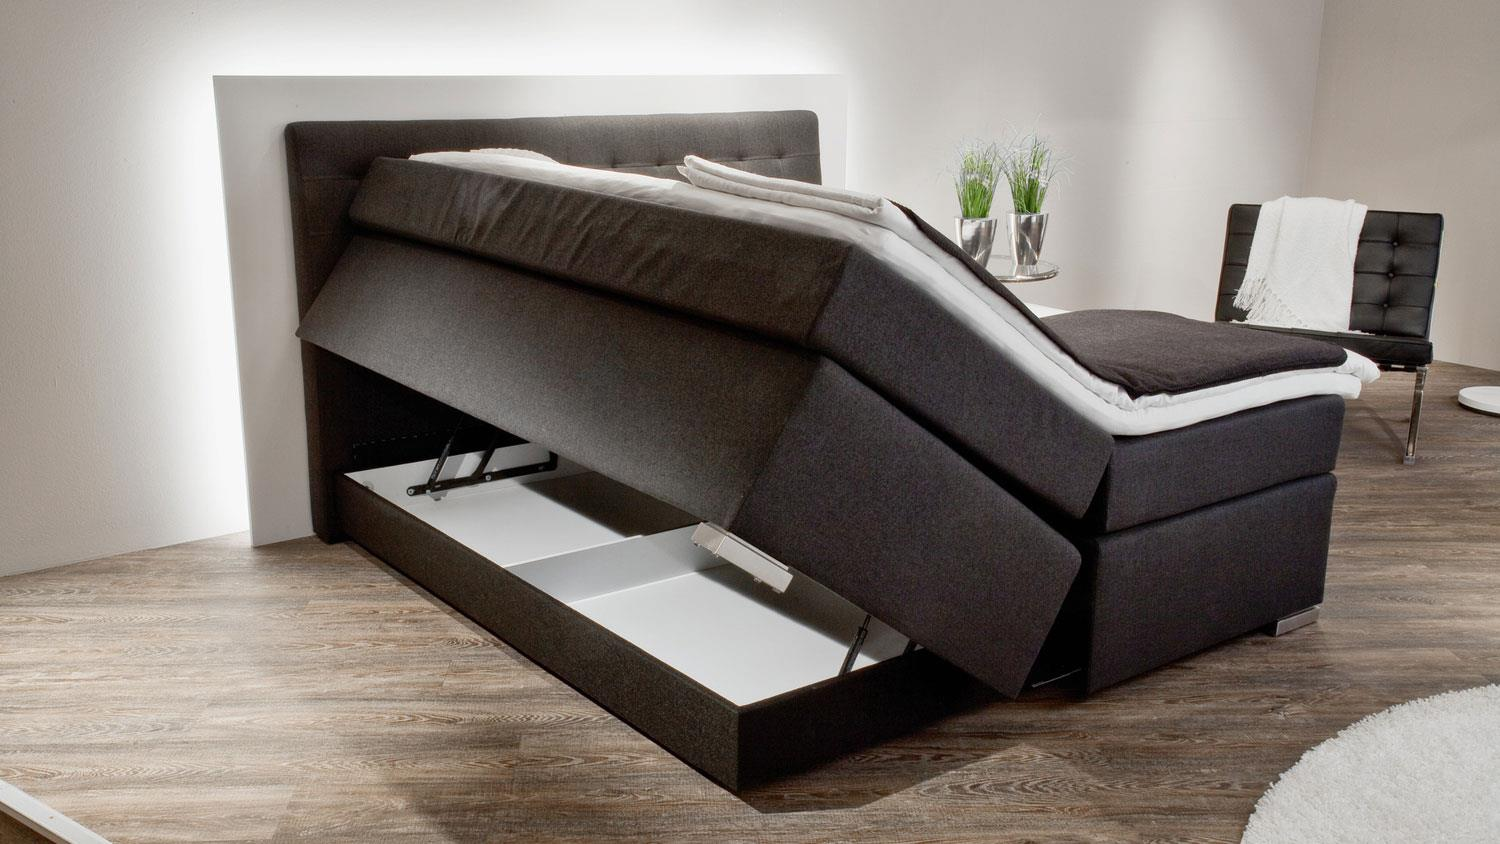 boxspringbett lenno stoff anthrazit mit bettkasten 180x200 cm. Black Bedroom Furniture Sets. Home Design Ideas